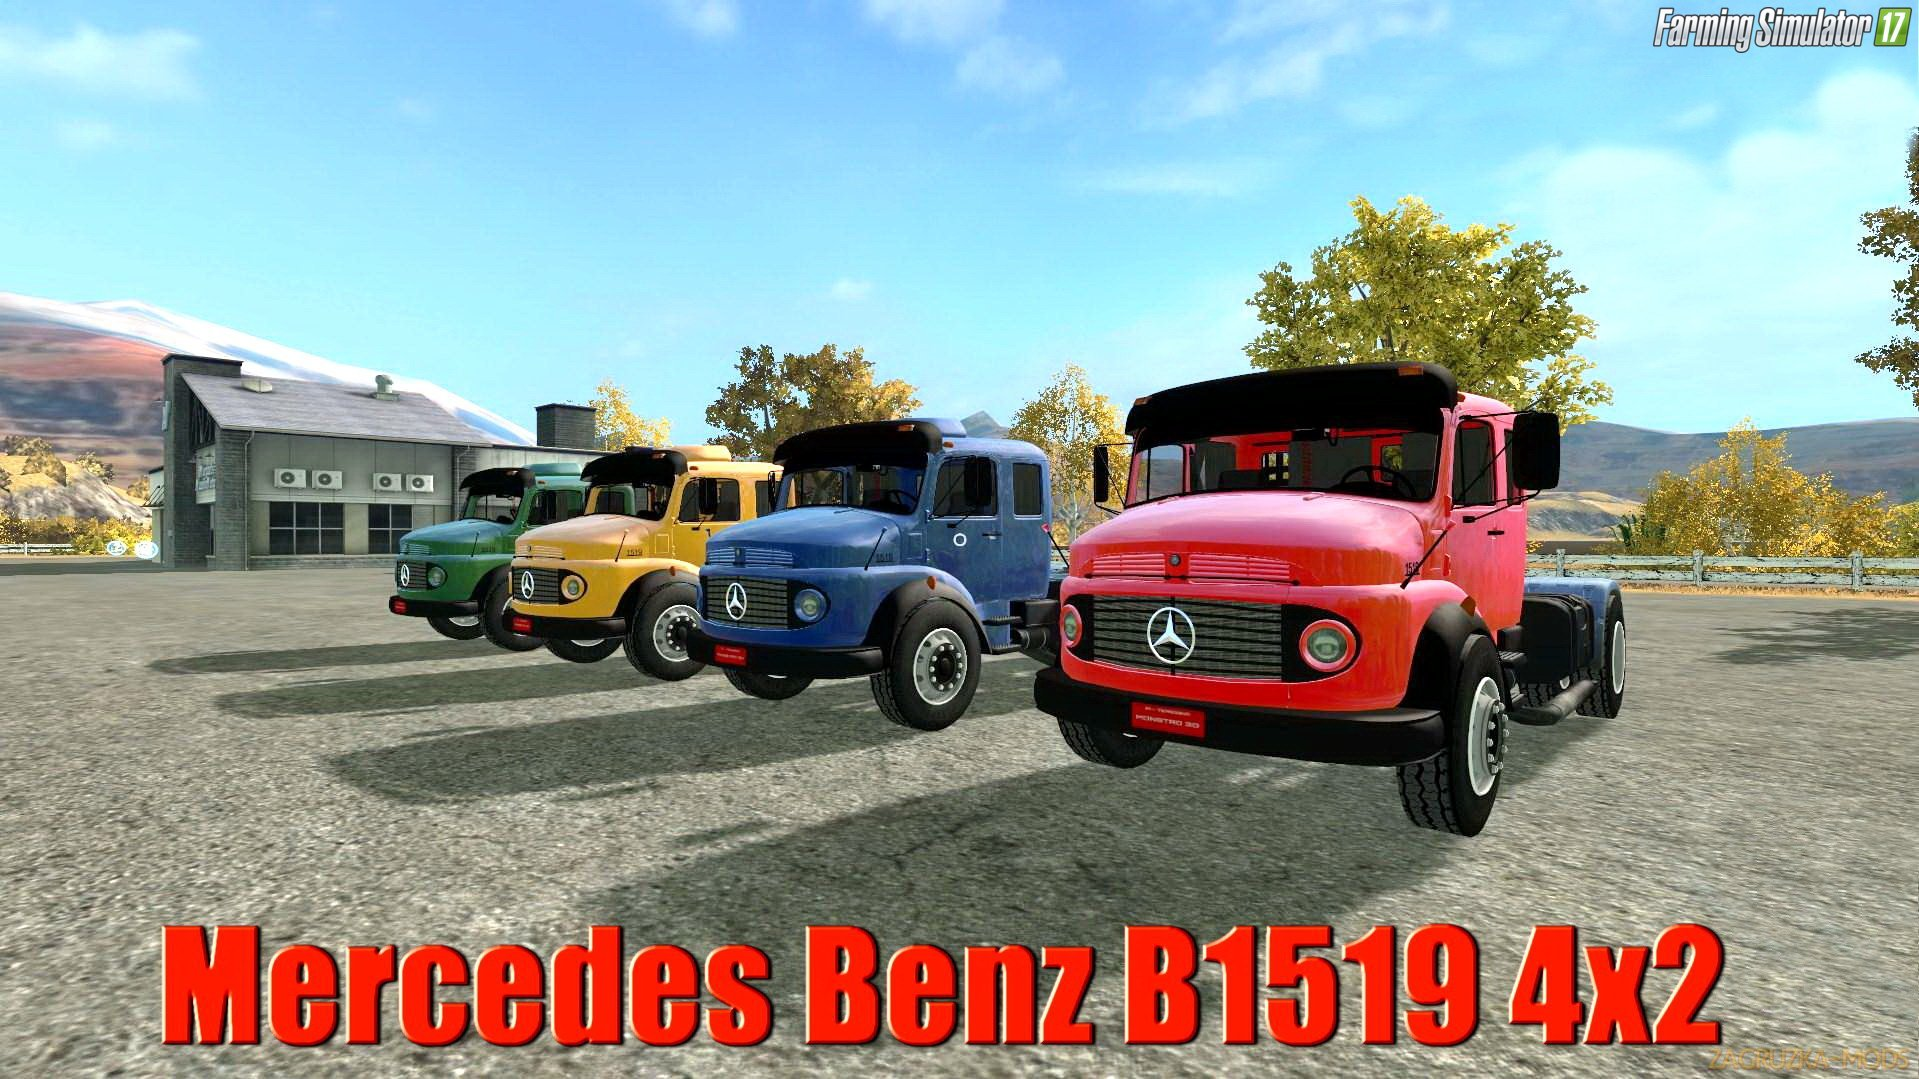 Мercedes Benz B1519 4x2 v1.0 for FS17